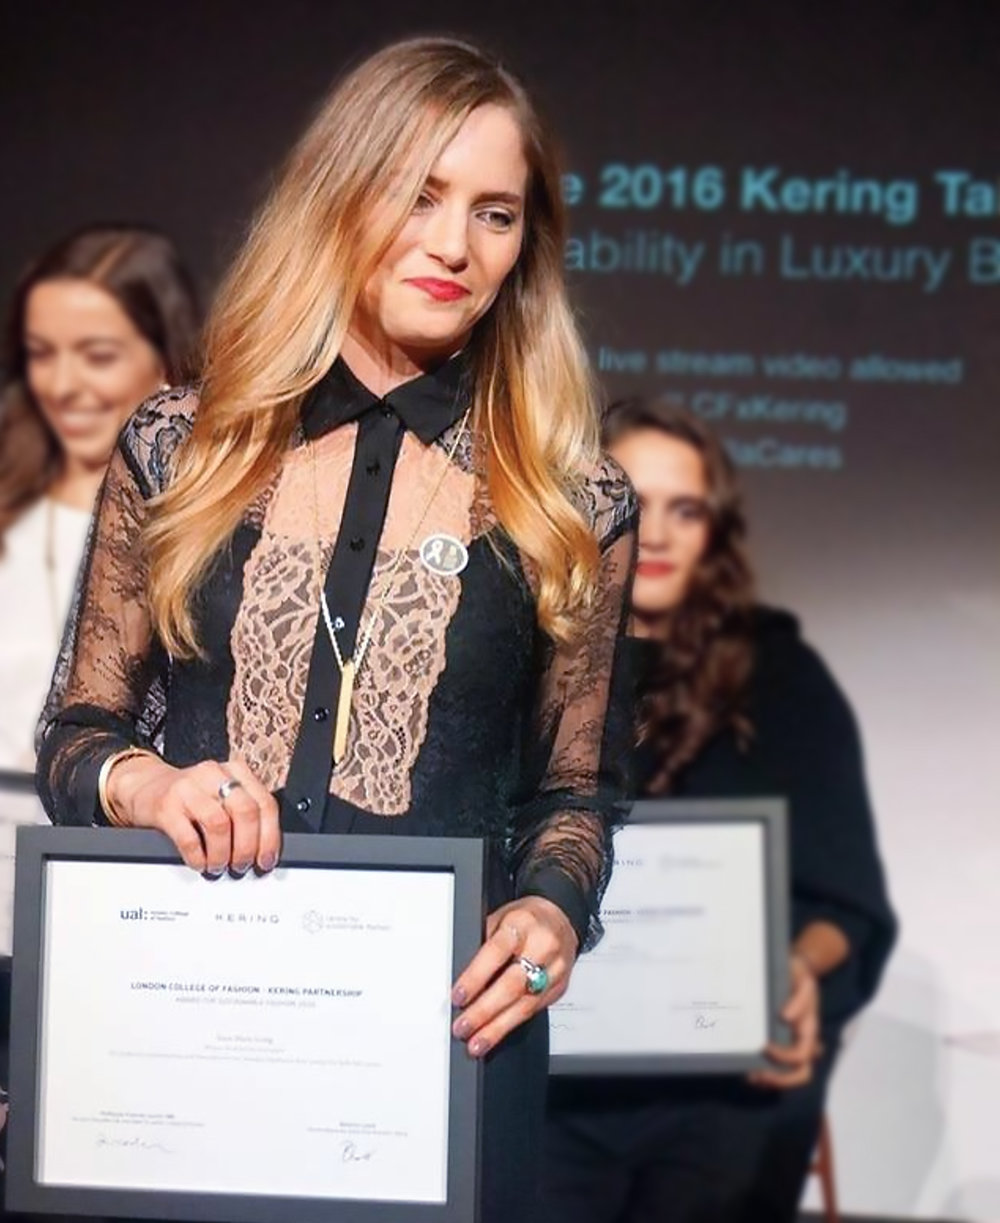 02 Awards - Winner of–2016 Kering Award for Sustainable Fashion Innovation, 2016 UAL Commercial Impact Award, 2017 Plug and Play Fashion for Good Accelerator.Finalist of–2017 Mayor of London Entrepreneur Award, 2017 Global Change Award.